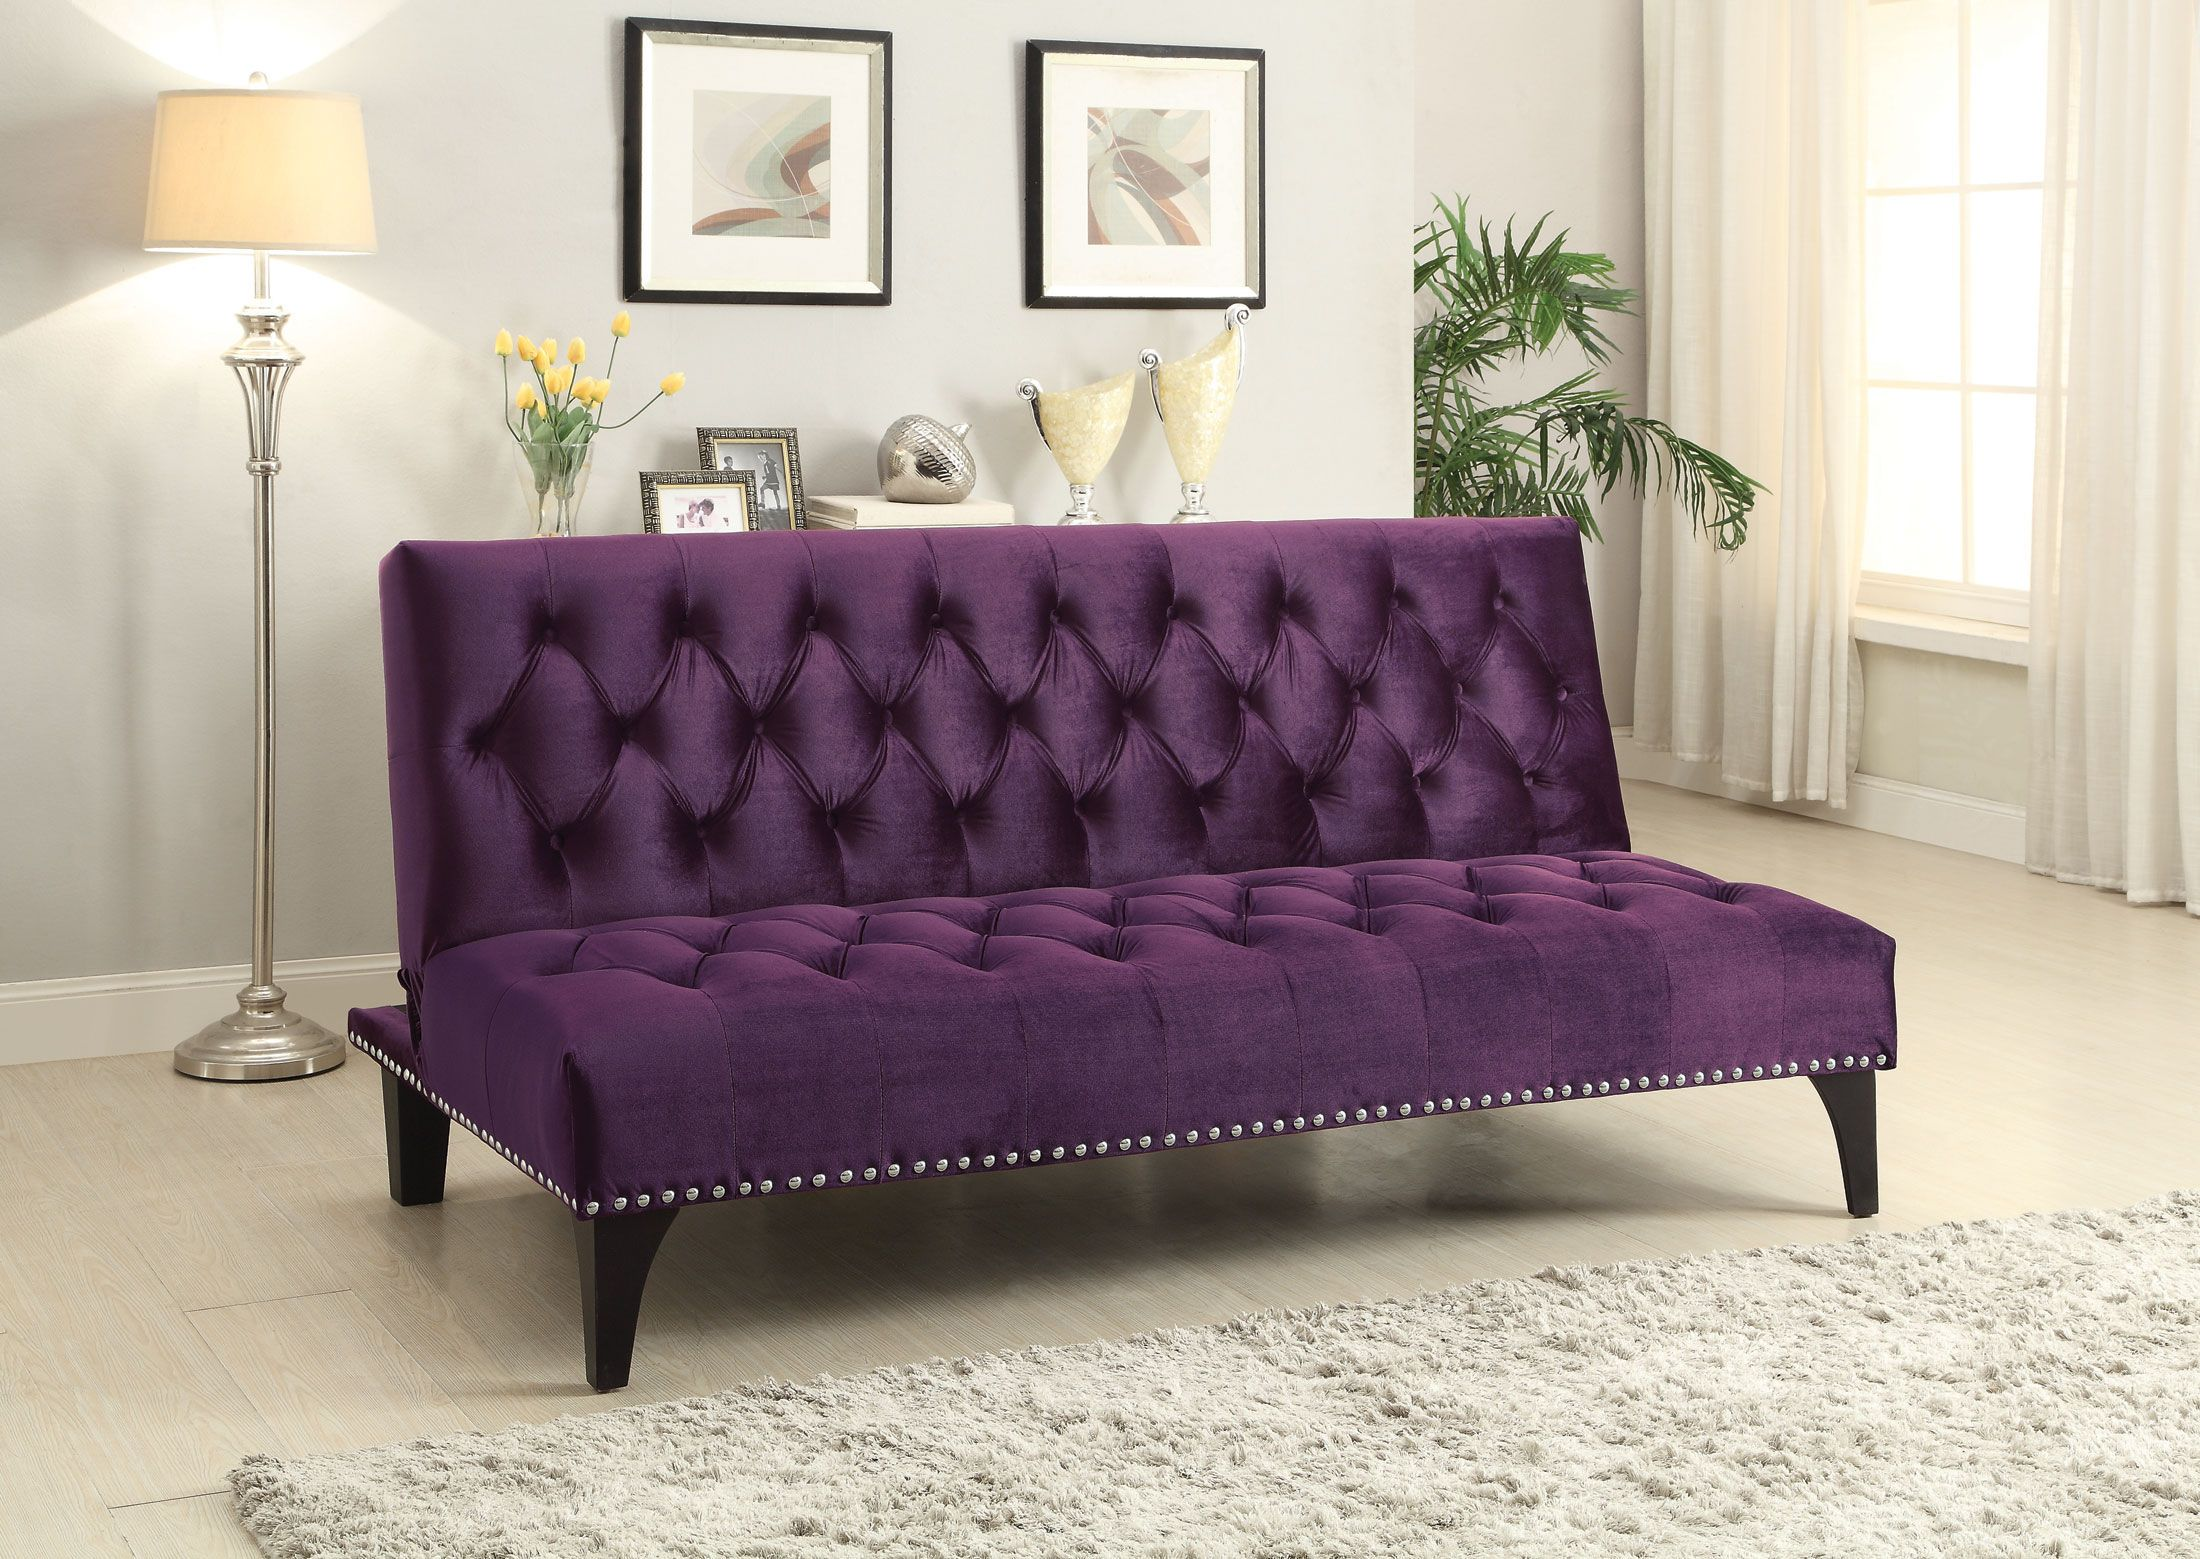 Coaster Furniture Purple Sofa Bed Velvet Sofa Bed Purple Sofa